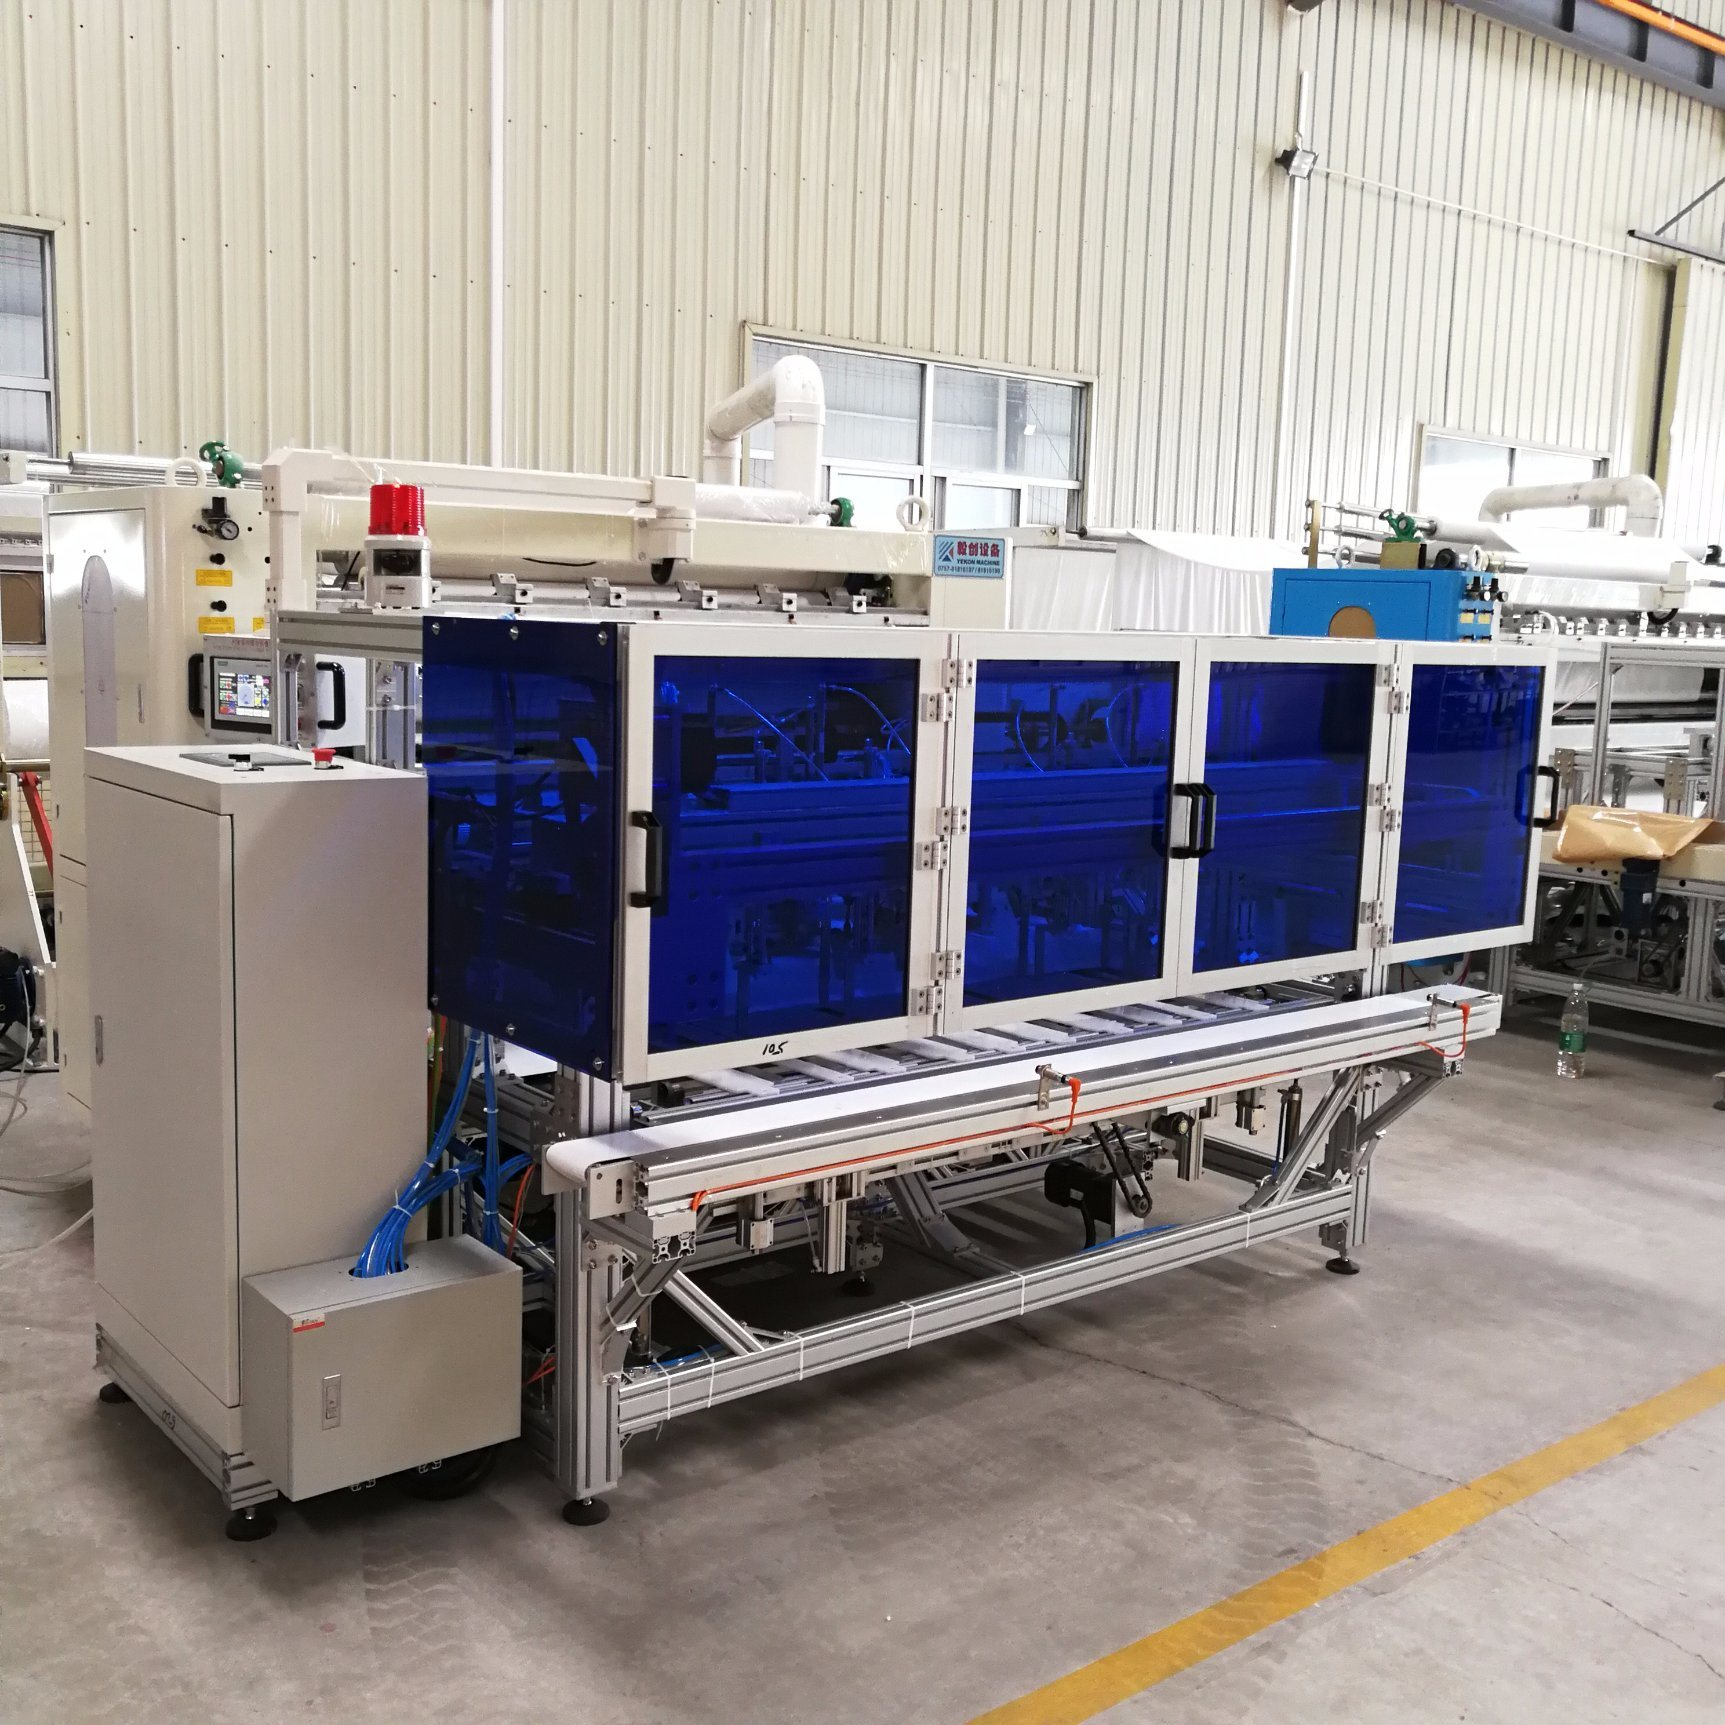 [Hot Item] Automatic Facial Tissue Paper Separating Machine Separator  Facial Tissue Machine